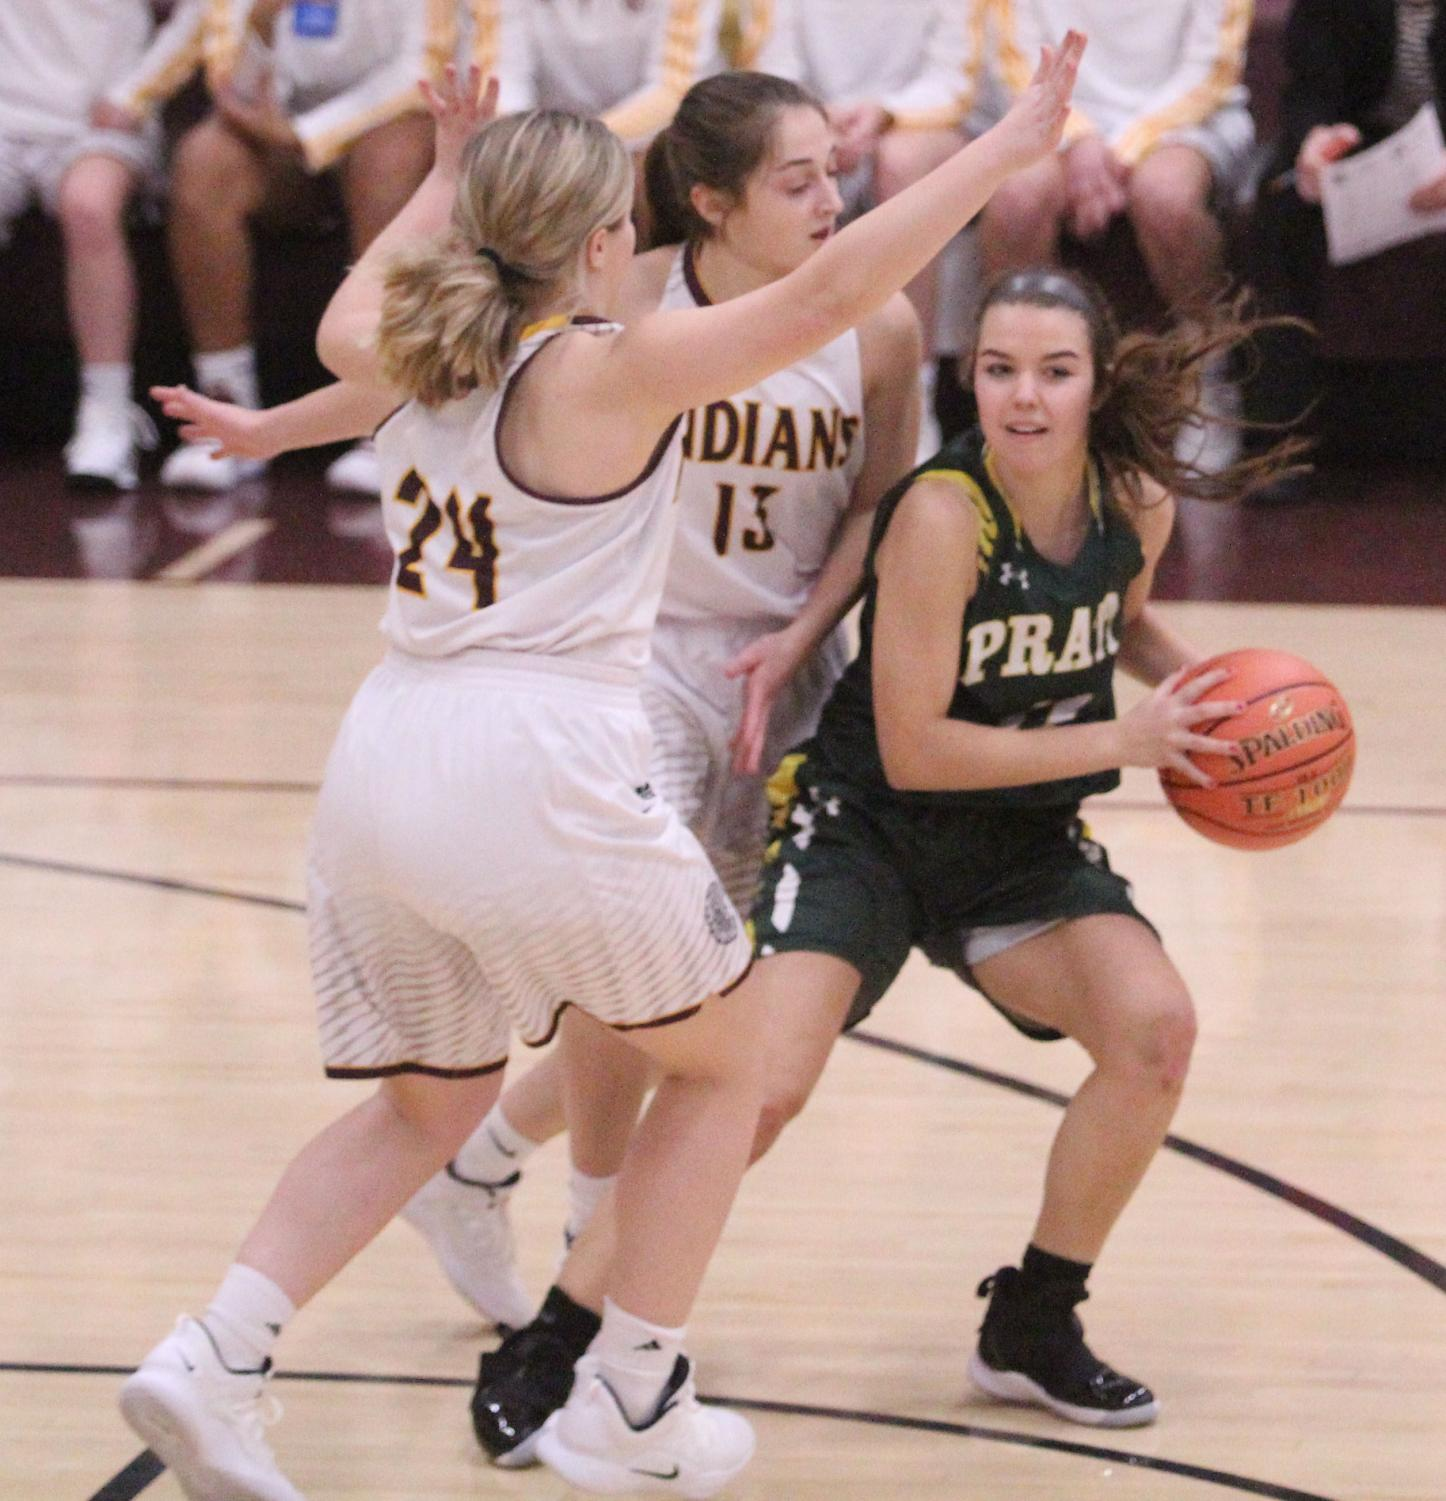 Seniors Mattie Hutchison and Kallie Leiker guard a Pratt player at a previous home game. The Indians are now 11-5 and will play the Abilene Cowboys on Feb.12.